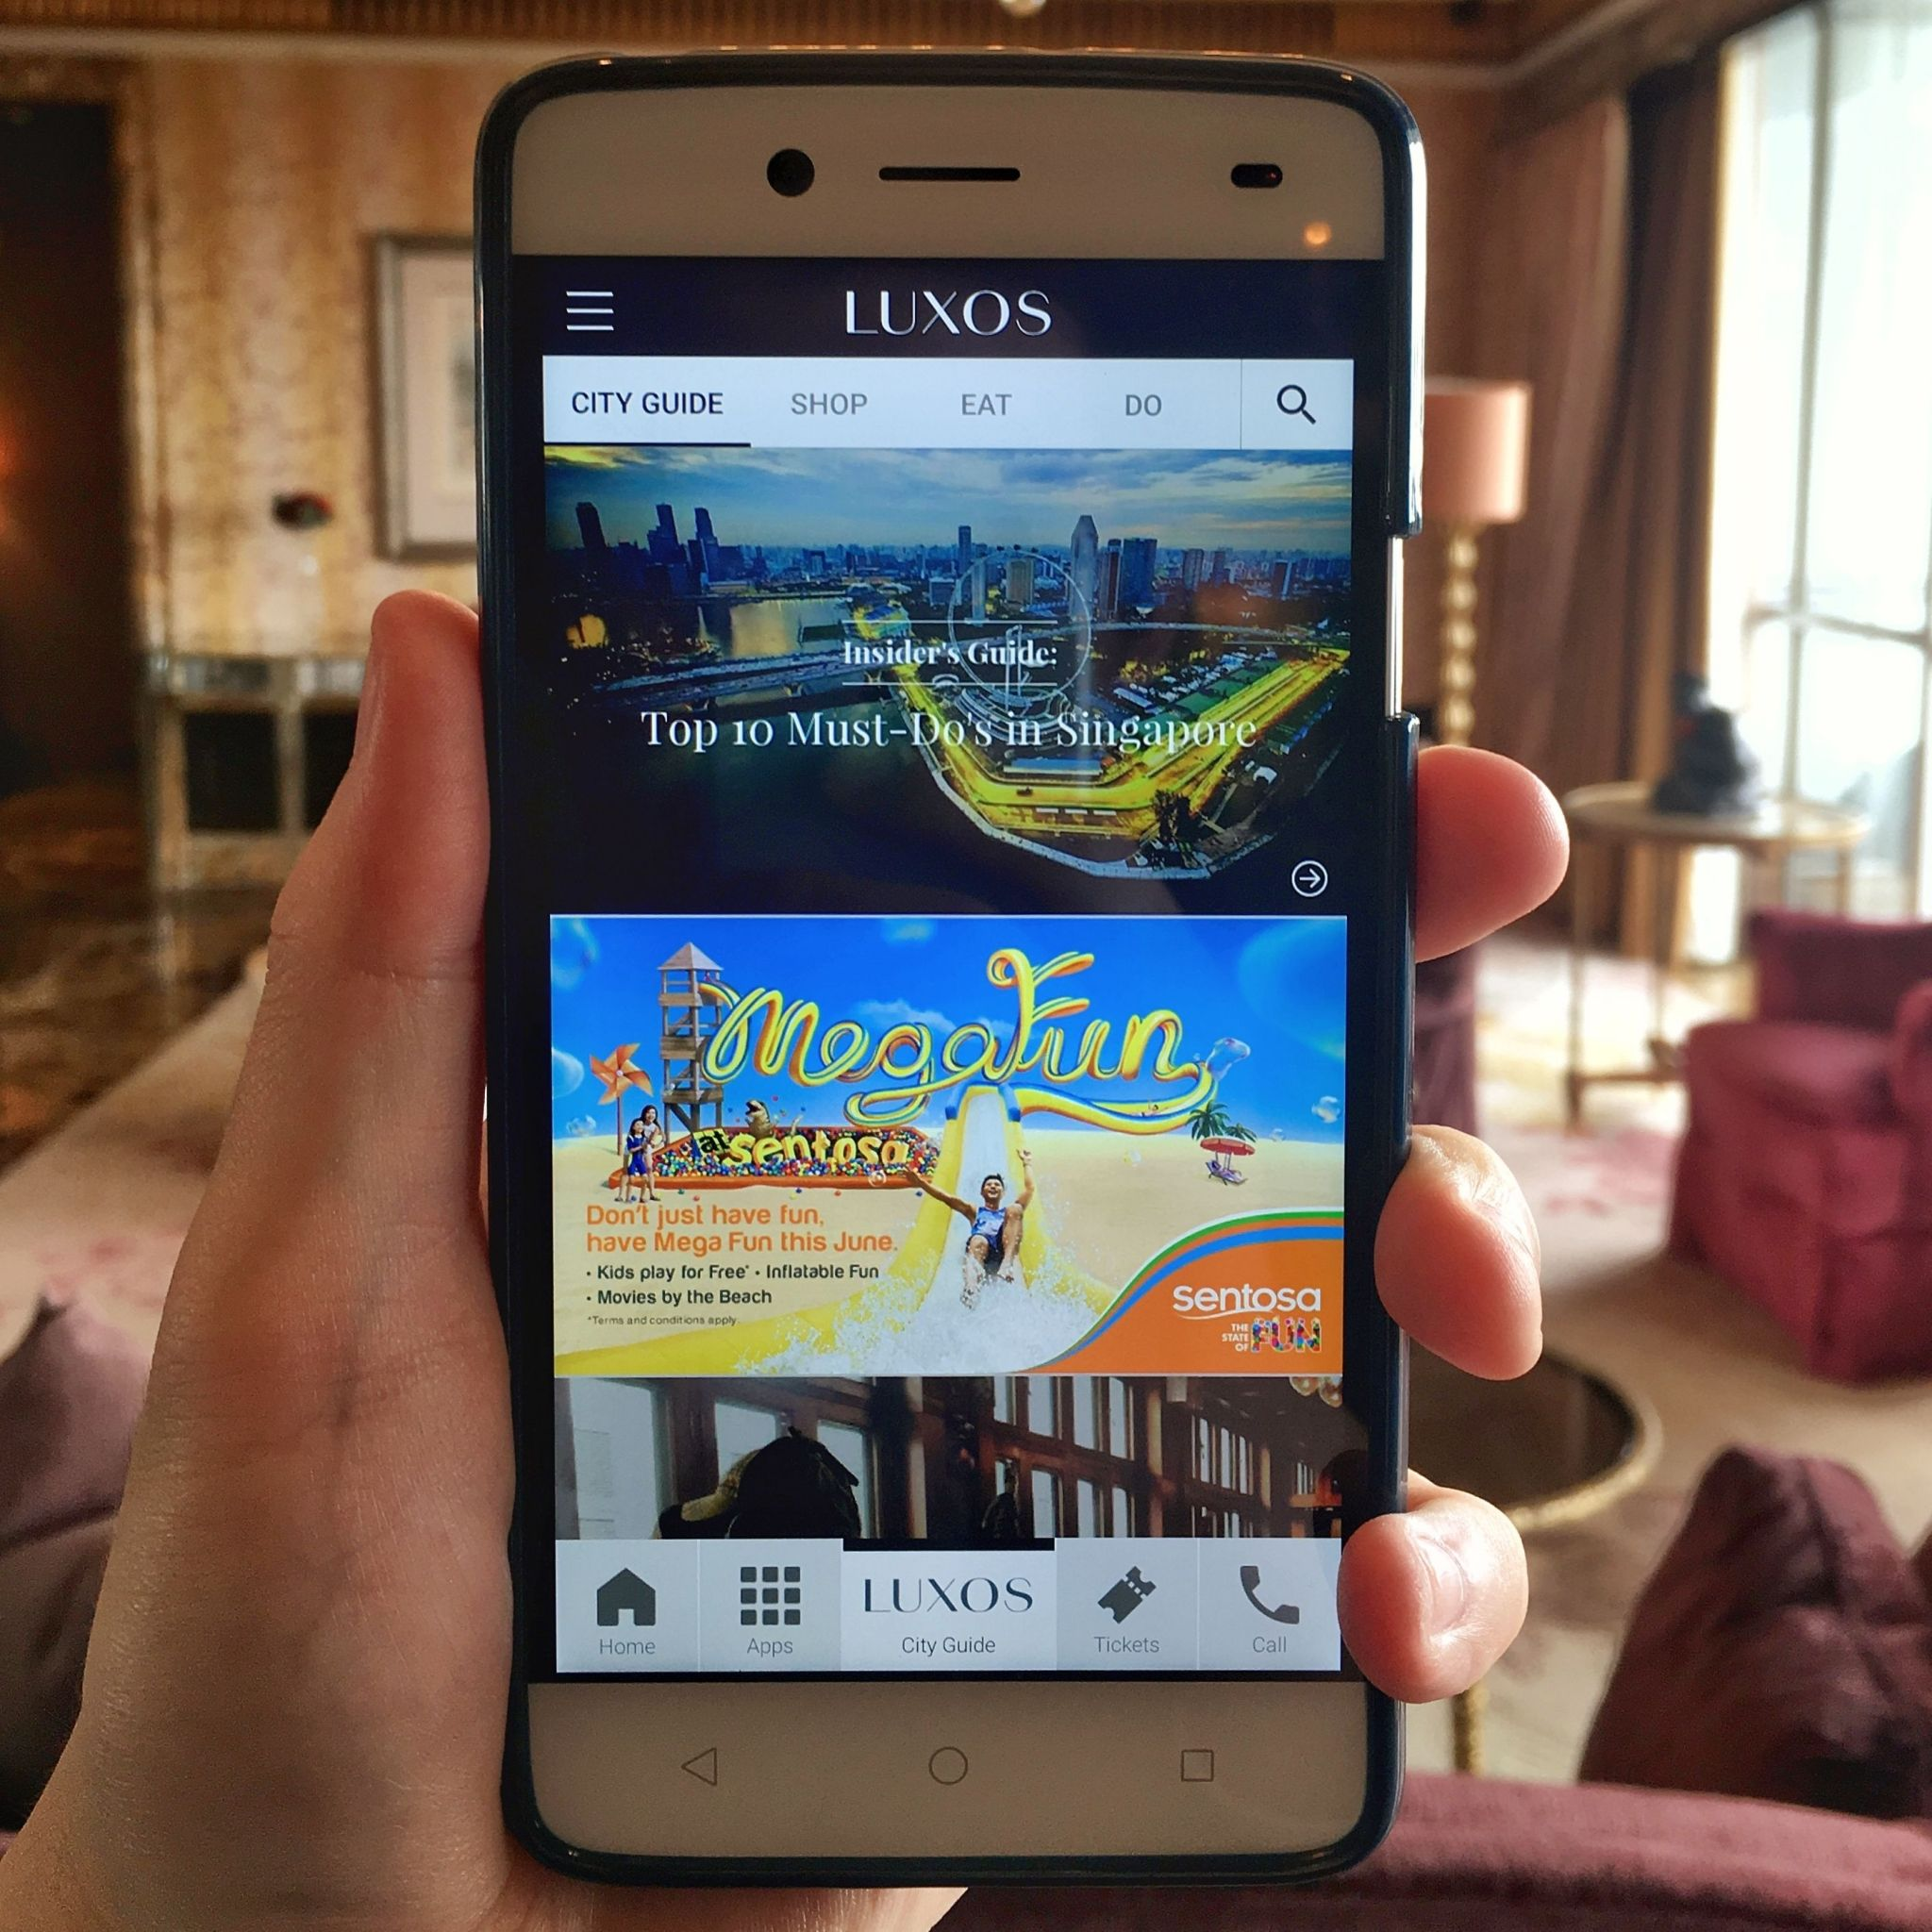 Handy Smartphone | The St. Regis Singapore